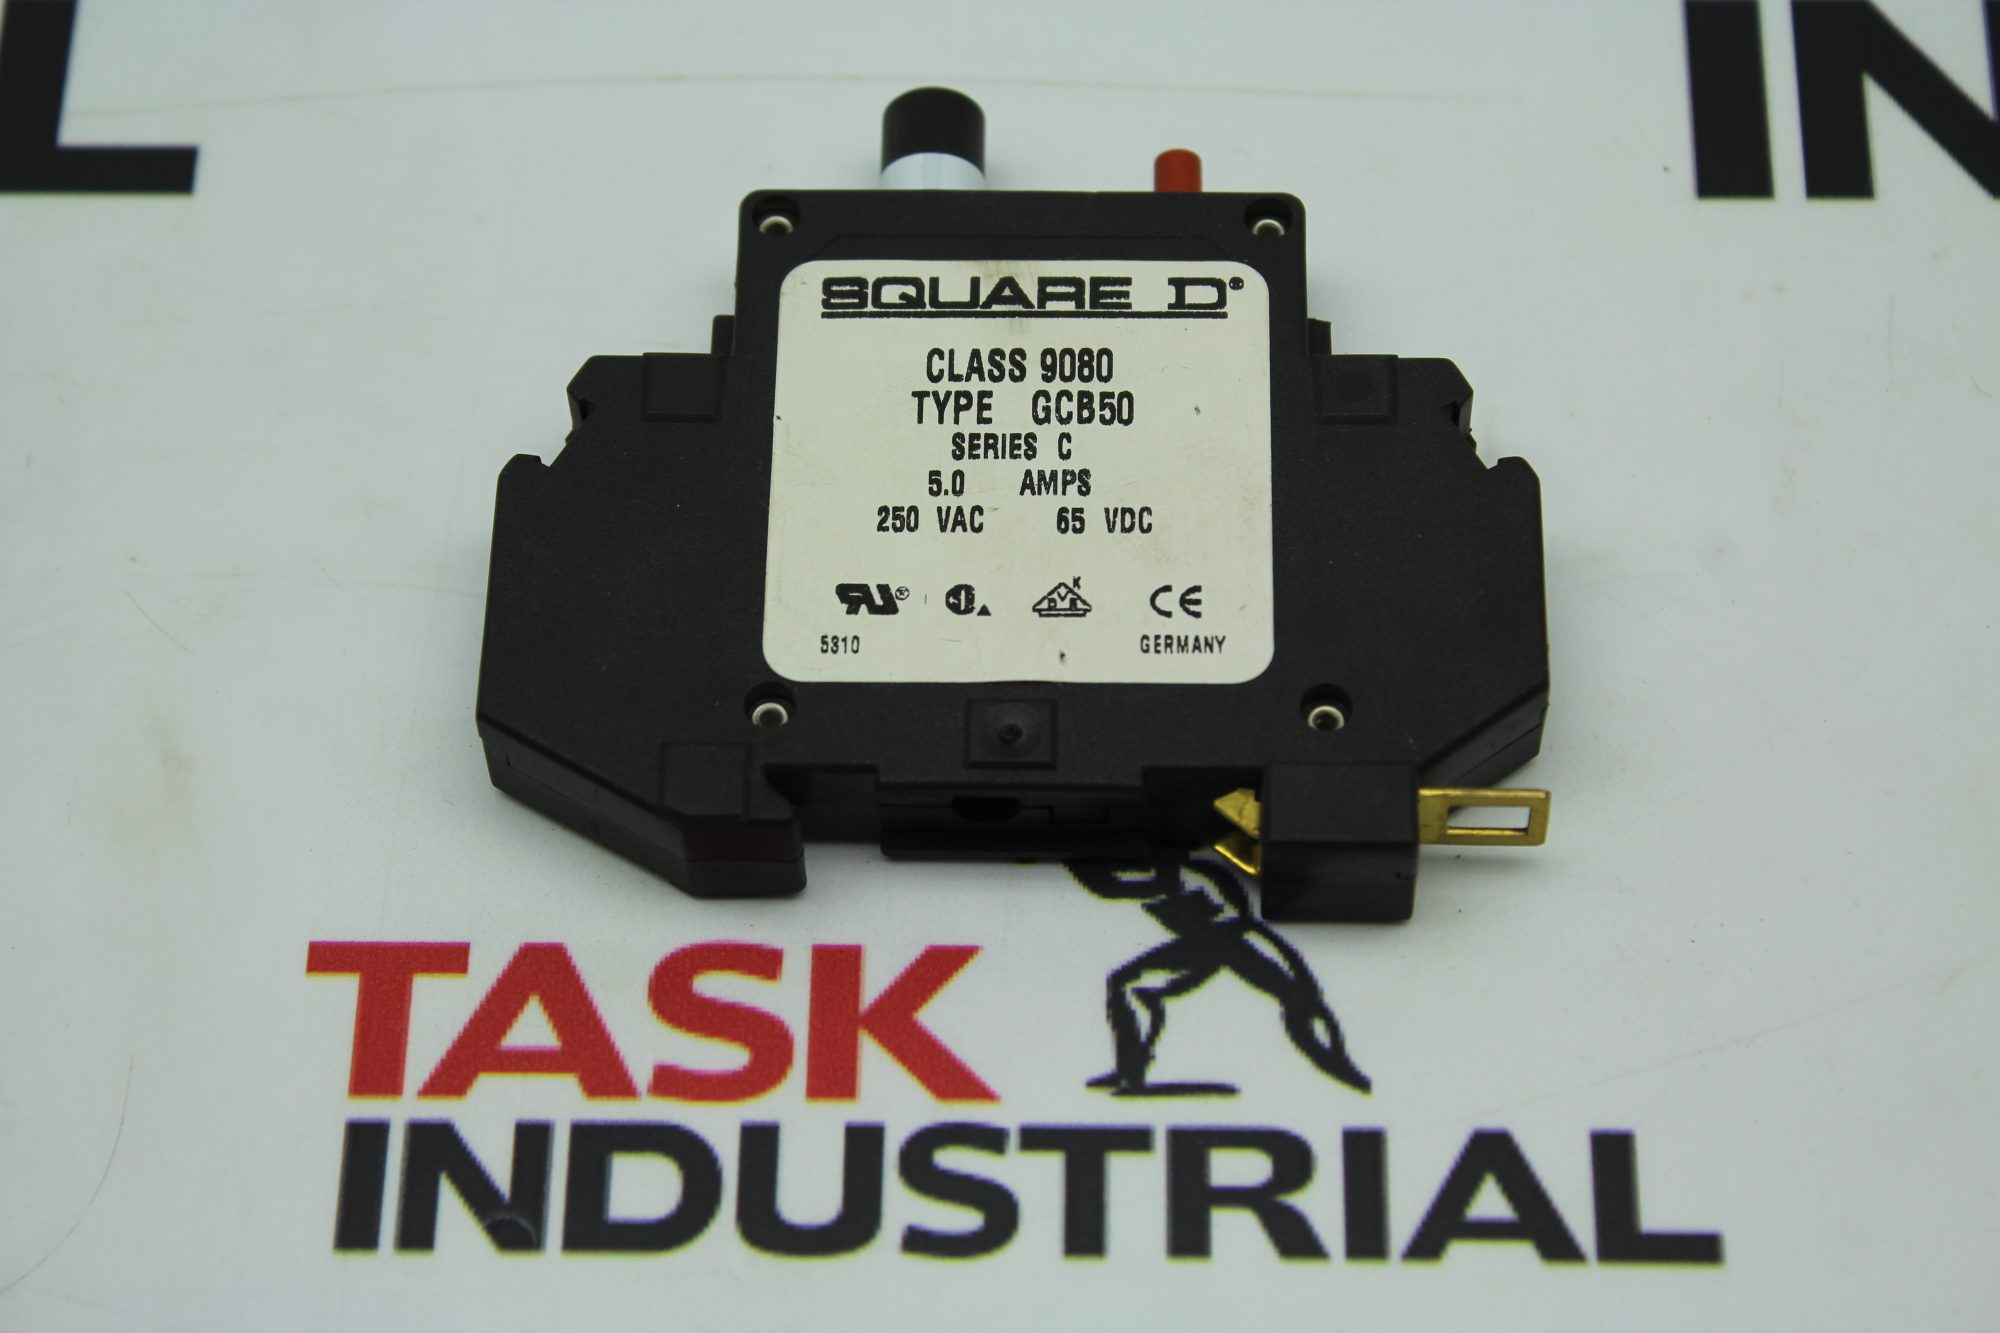 Square D Class 9080 Type GCB50 Circuit Breaker